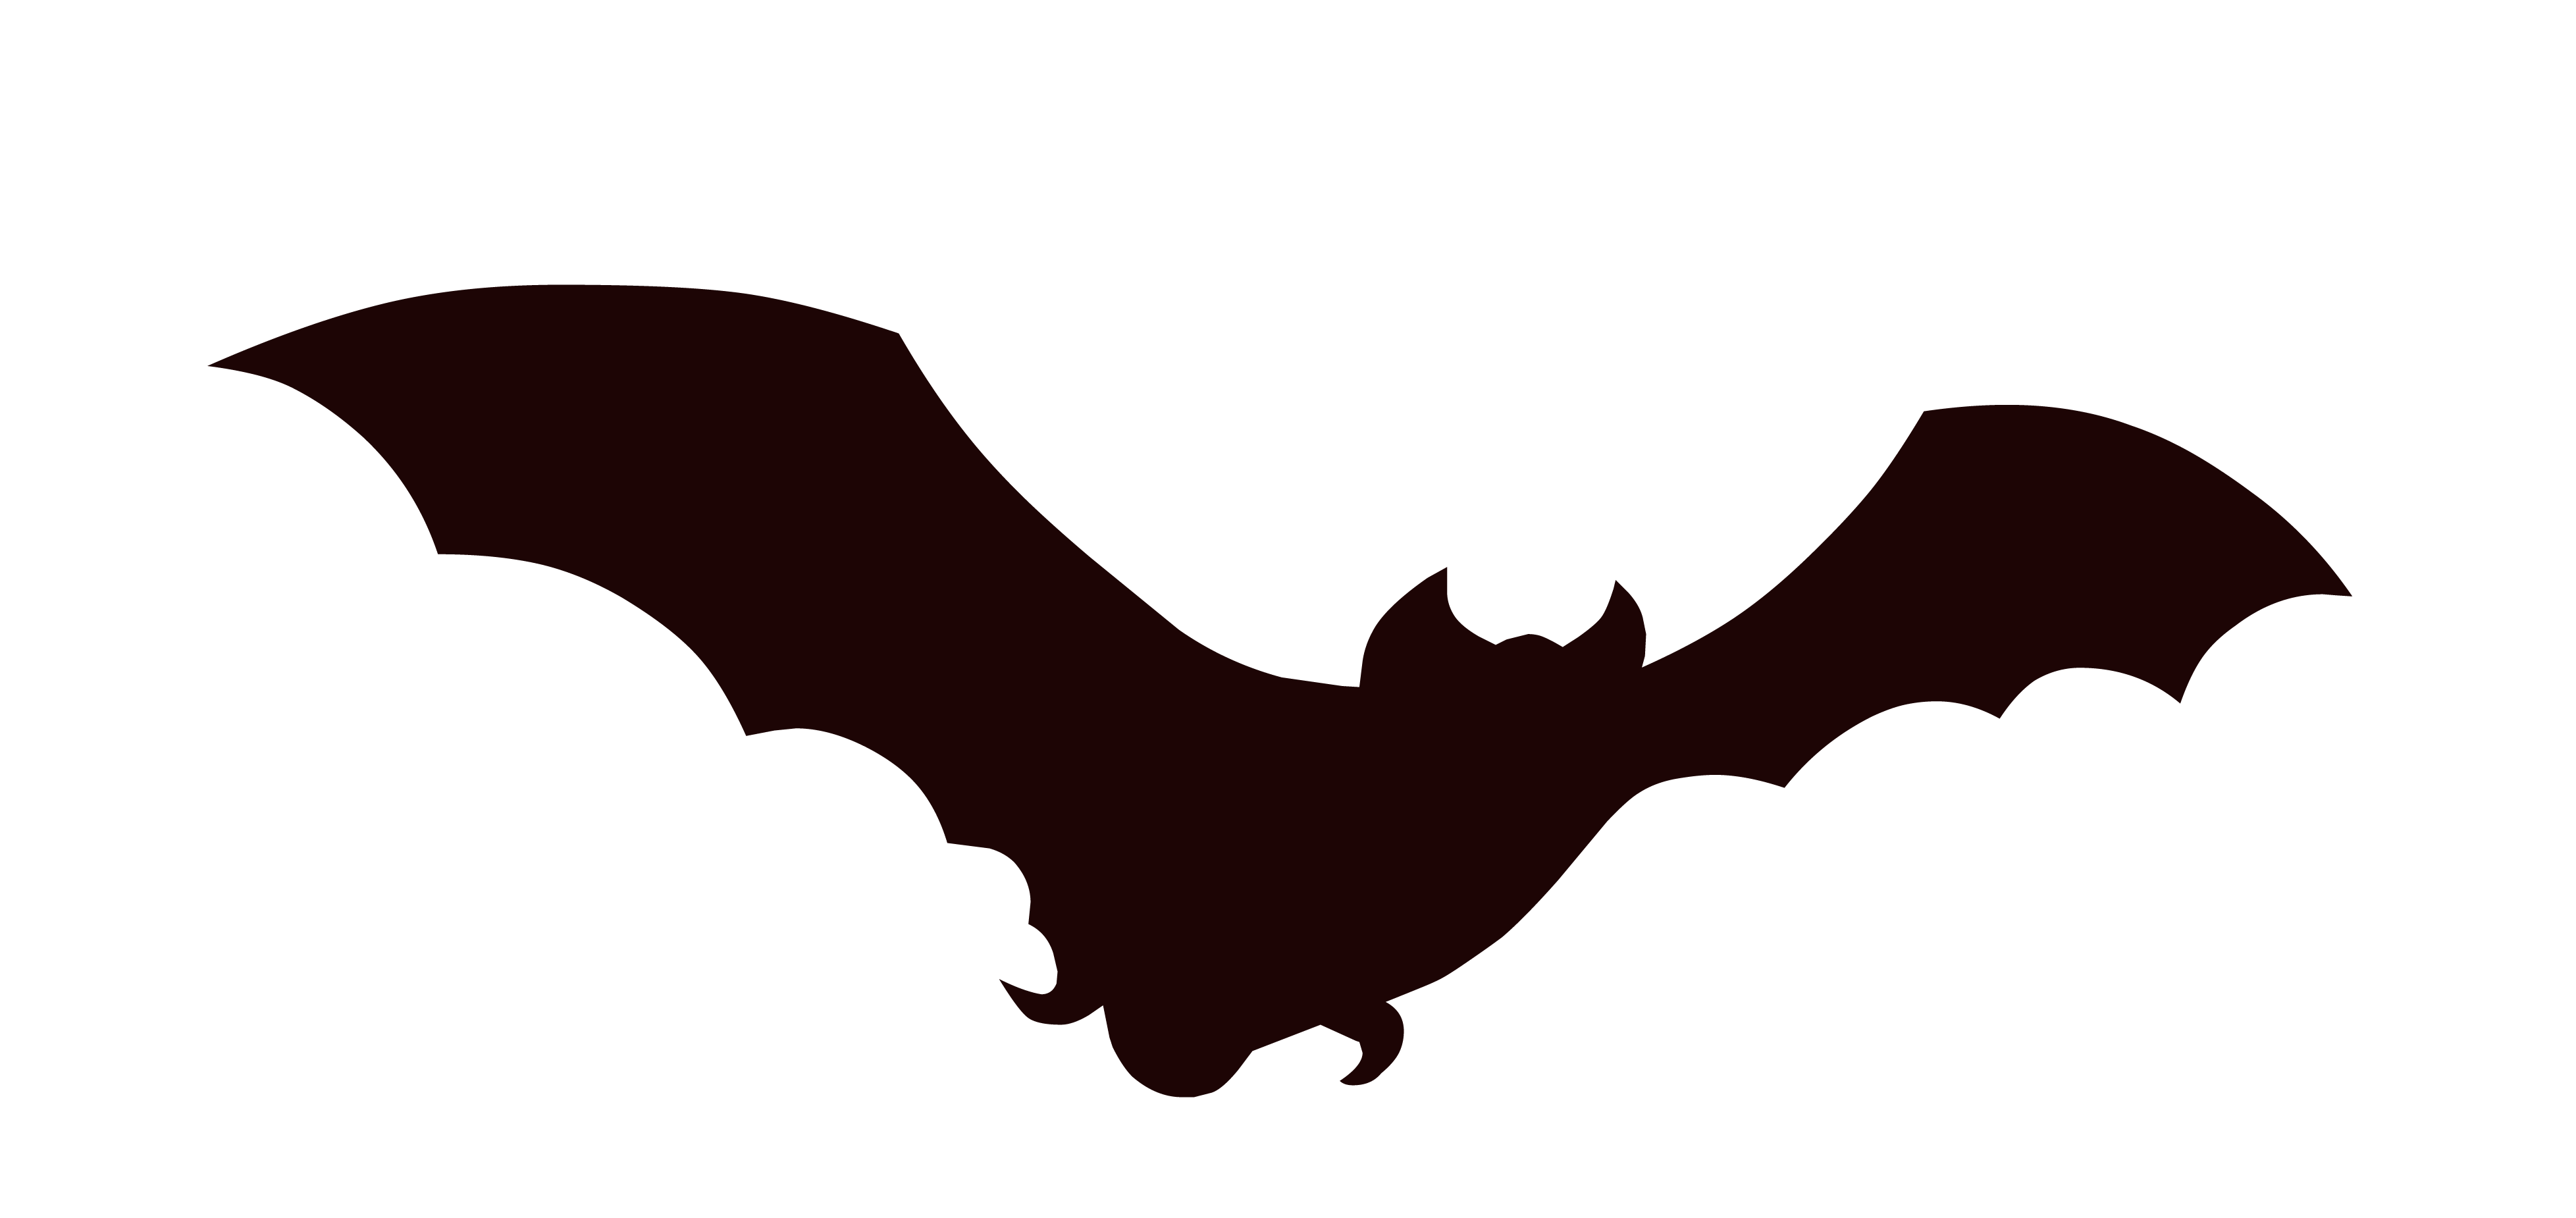 transparent library Bat Silhouette Clip Art at GetDrawings